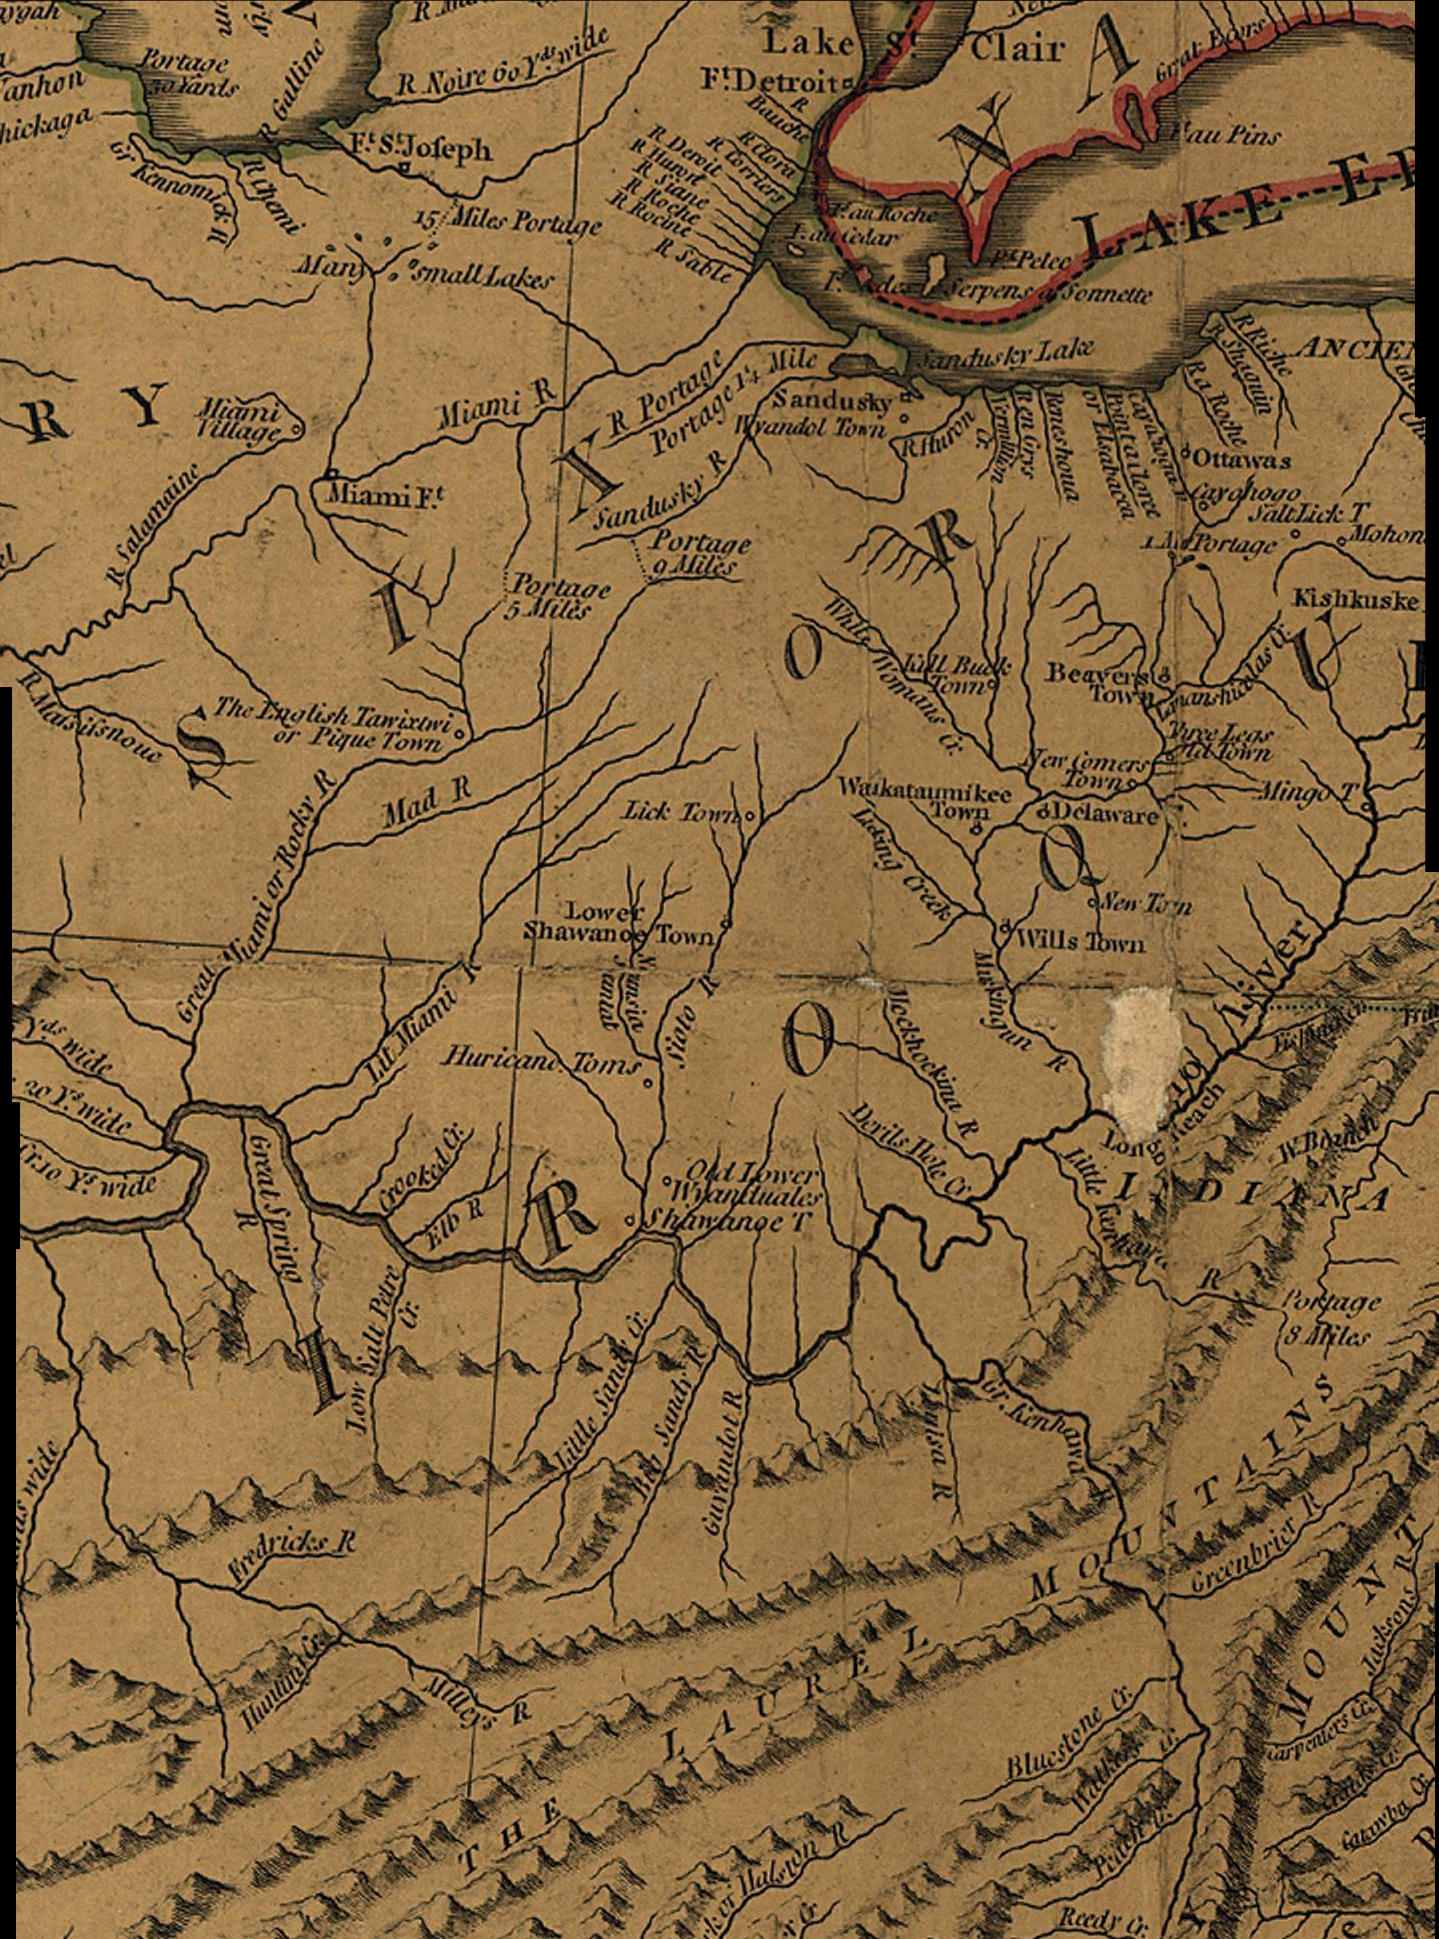 Maps map links and aerial photos 1783 subsection of the j cary map ohio river gumiabroncs Choice Image